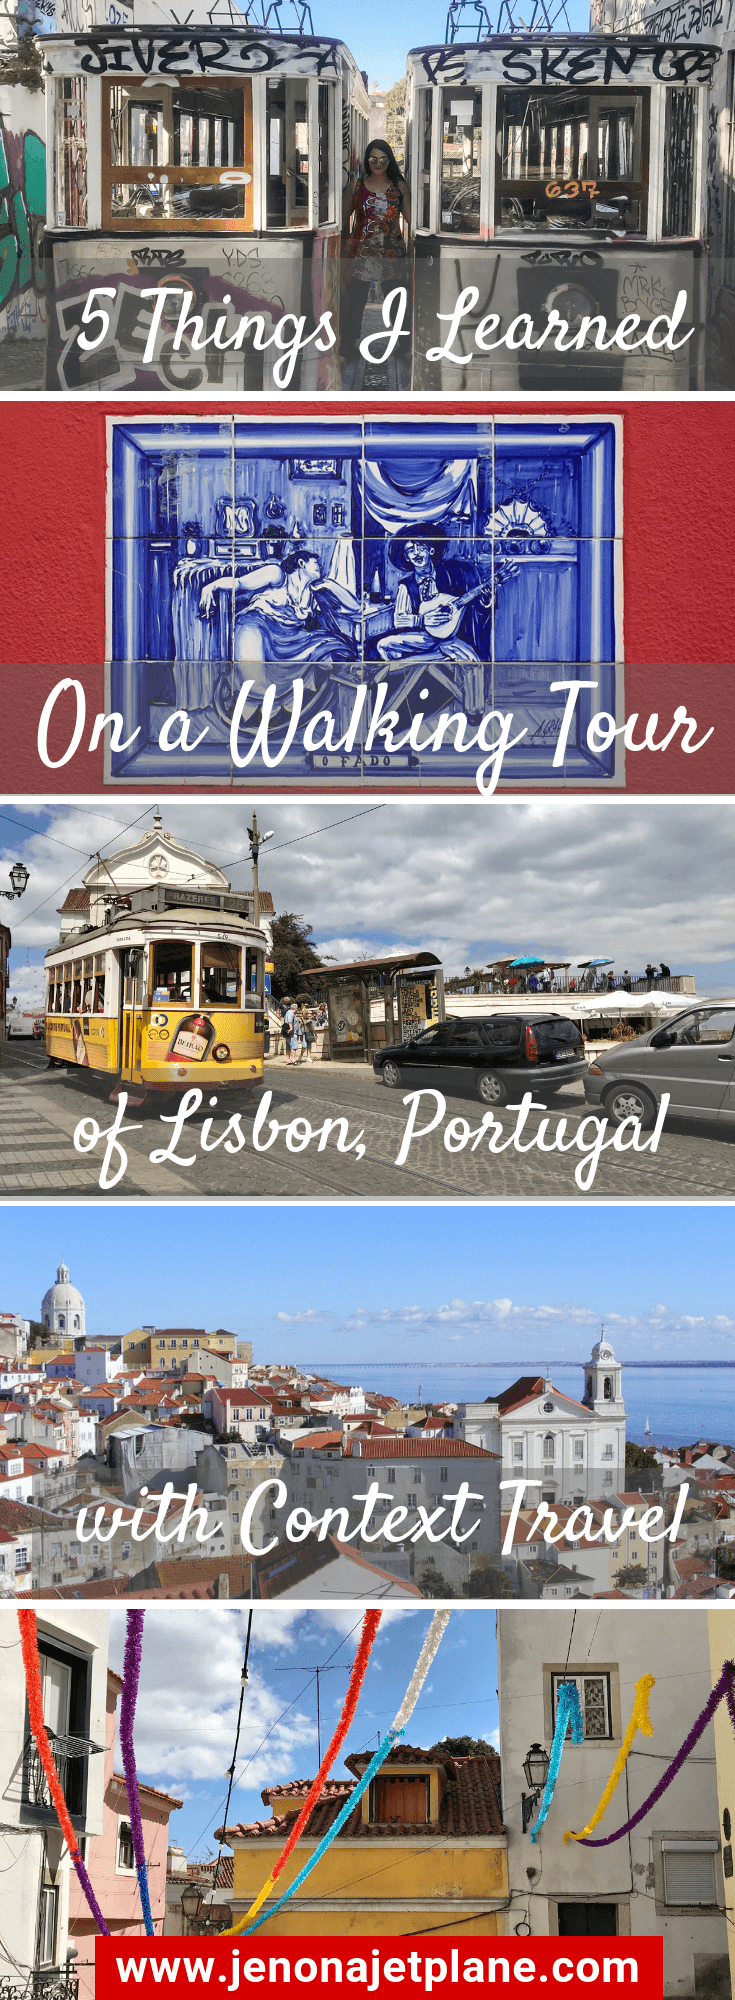 Want to take a Lisbon walking tour? I recommend going with Context Travel to experience the city like a local. Save to your travel board for inspiration. #lisbonportugal #lisbonwalkingtour #lisbontravel #contexttravel